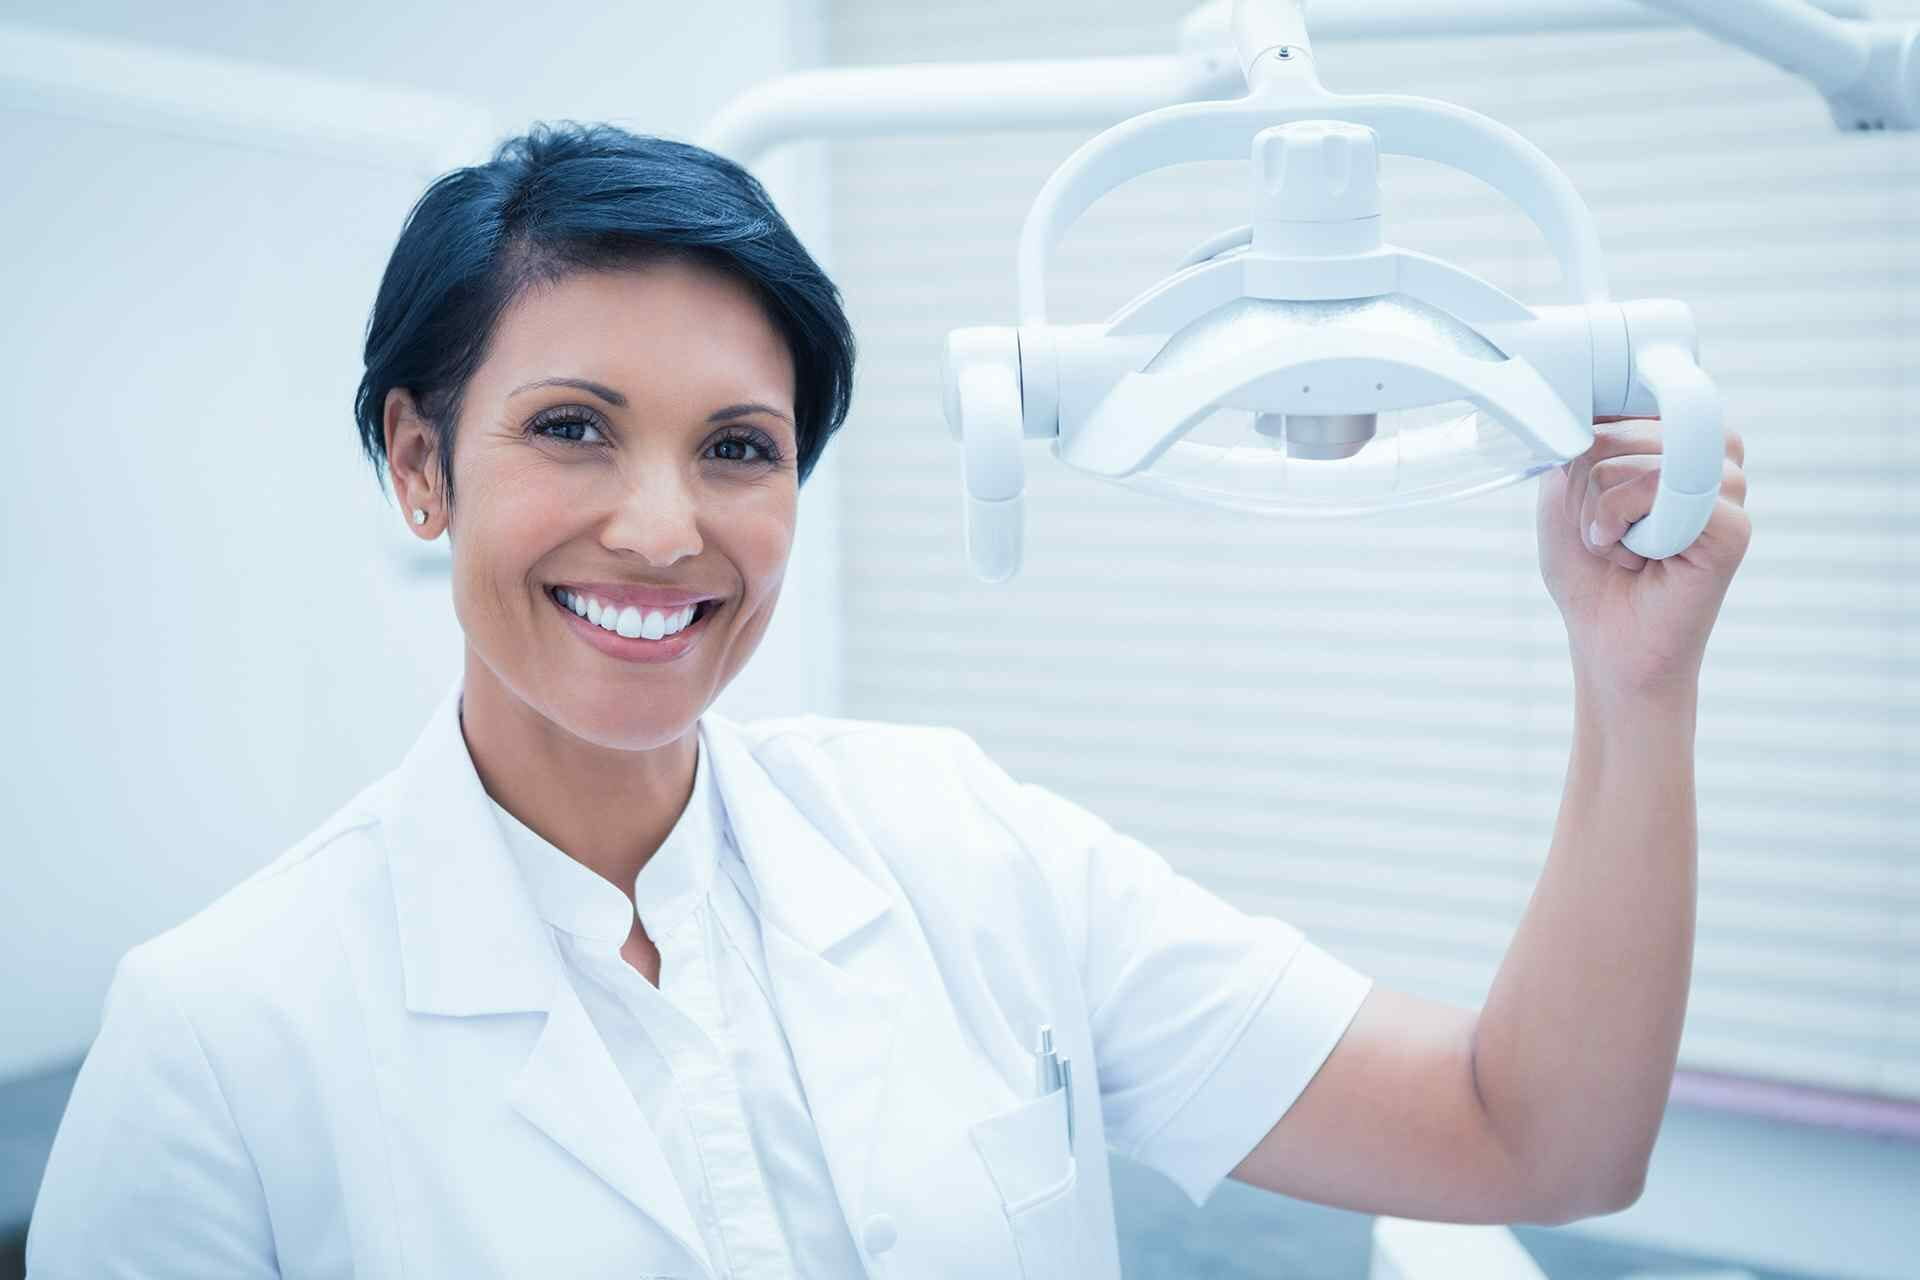 Dentist holding a dental lamp